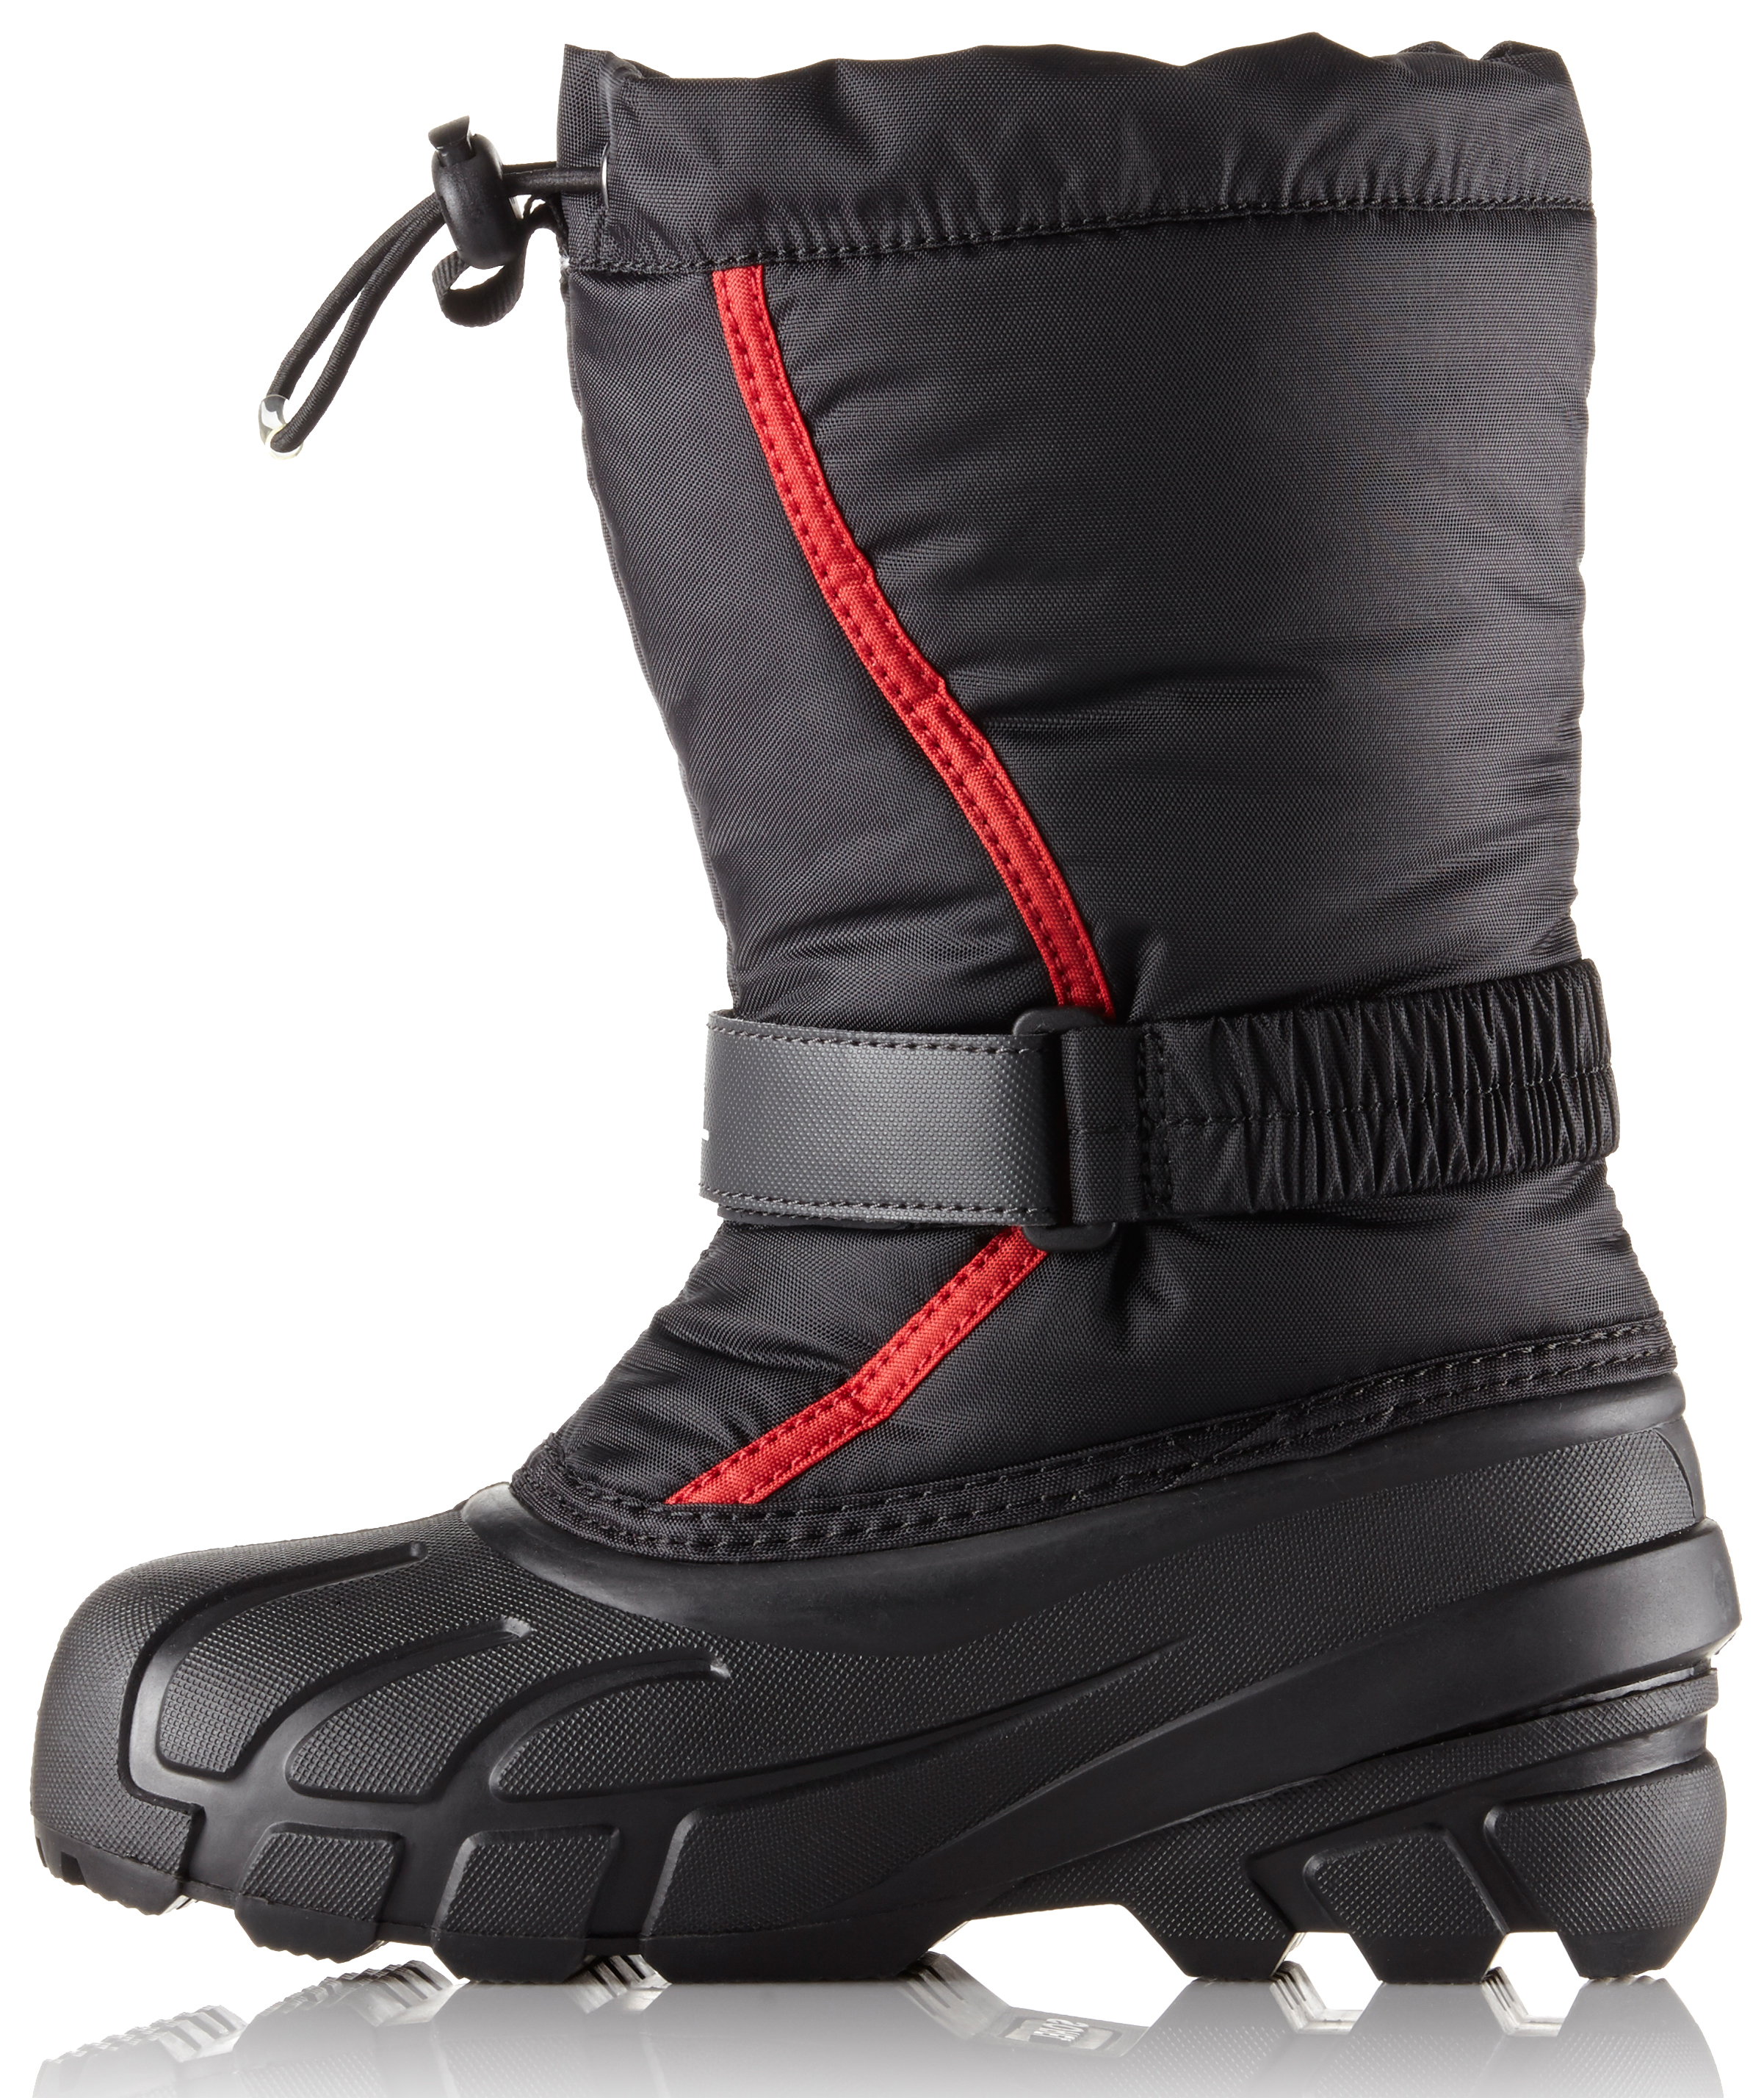 8af26086fe9 Sorel Flurry TP Winter Boots - Children to Youths | MEC